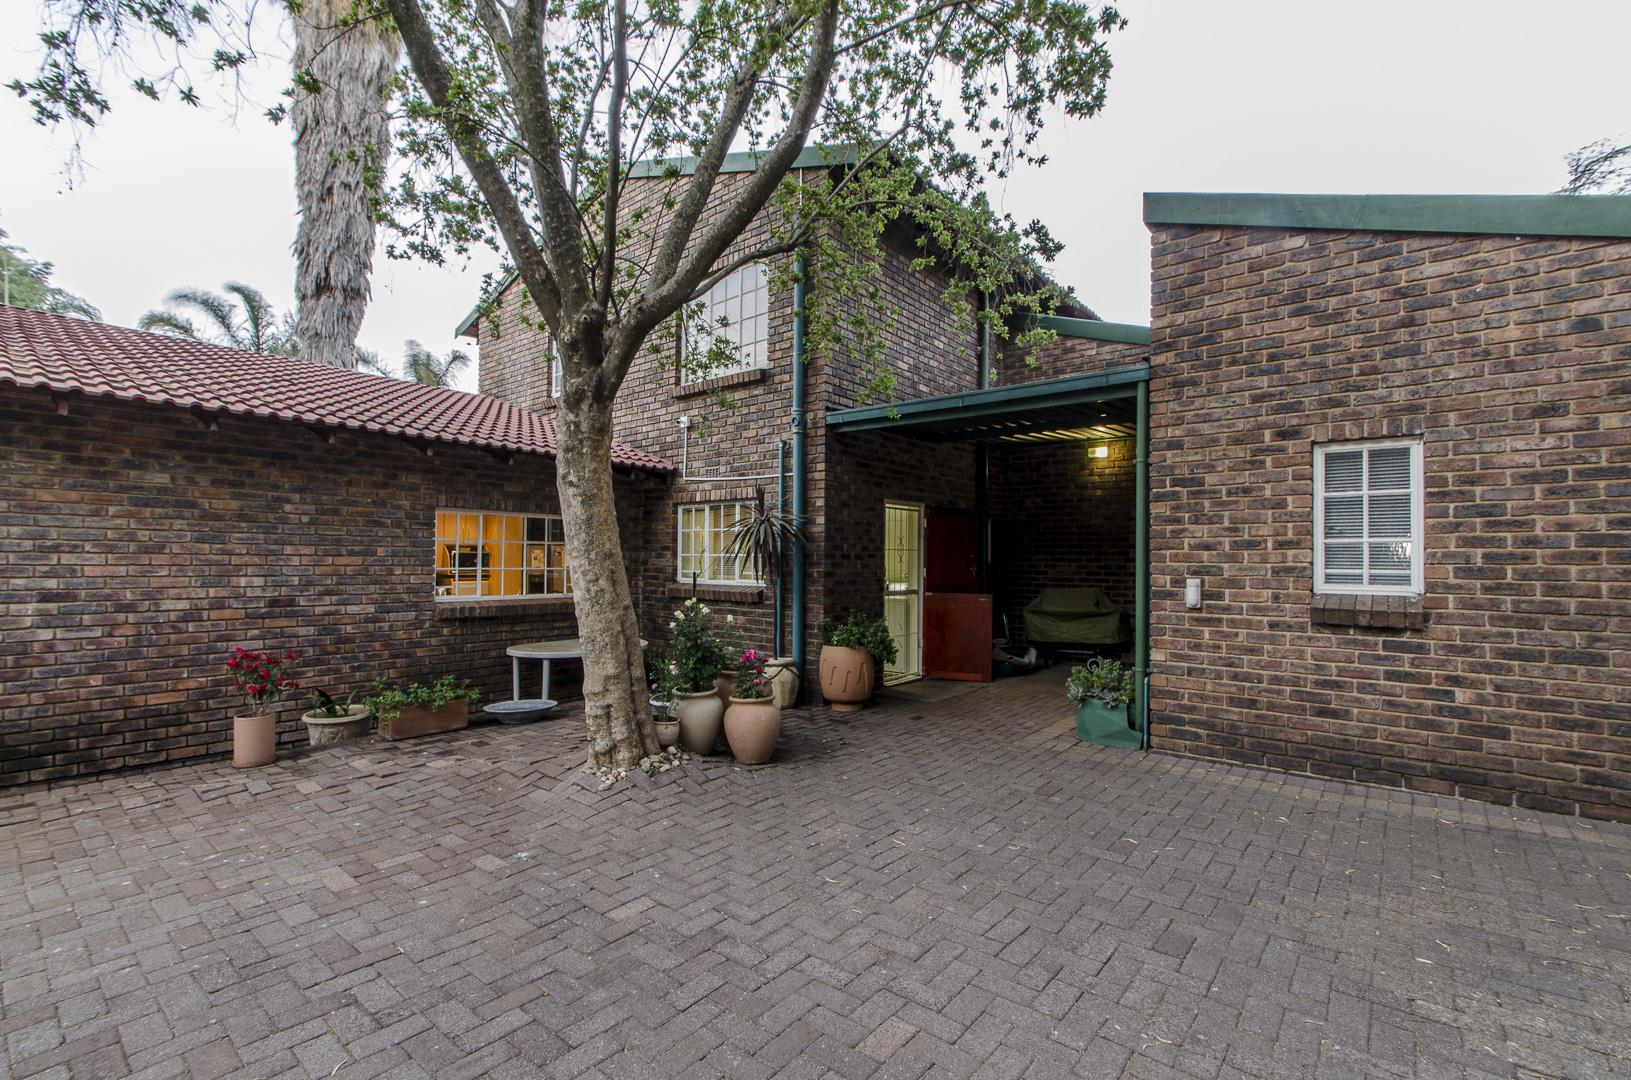 4 Bedroom House for Sale in Wilro Park, Roodepoort - Gauteng